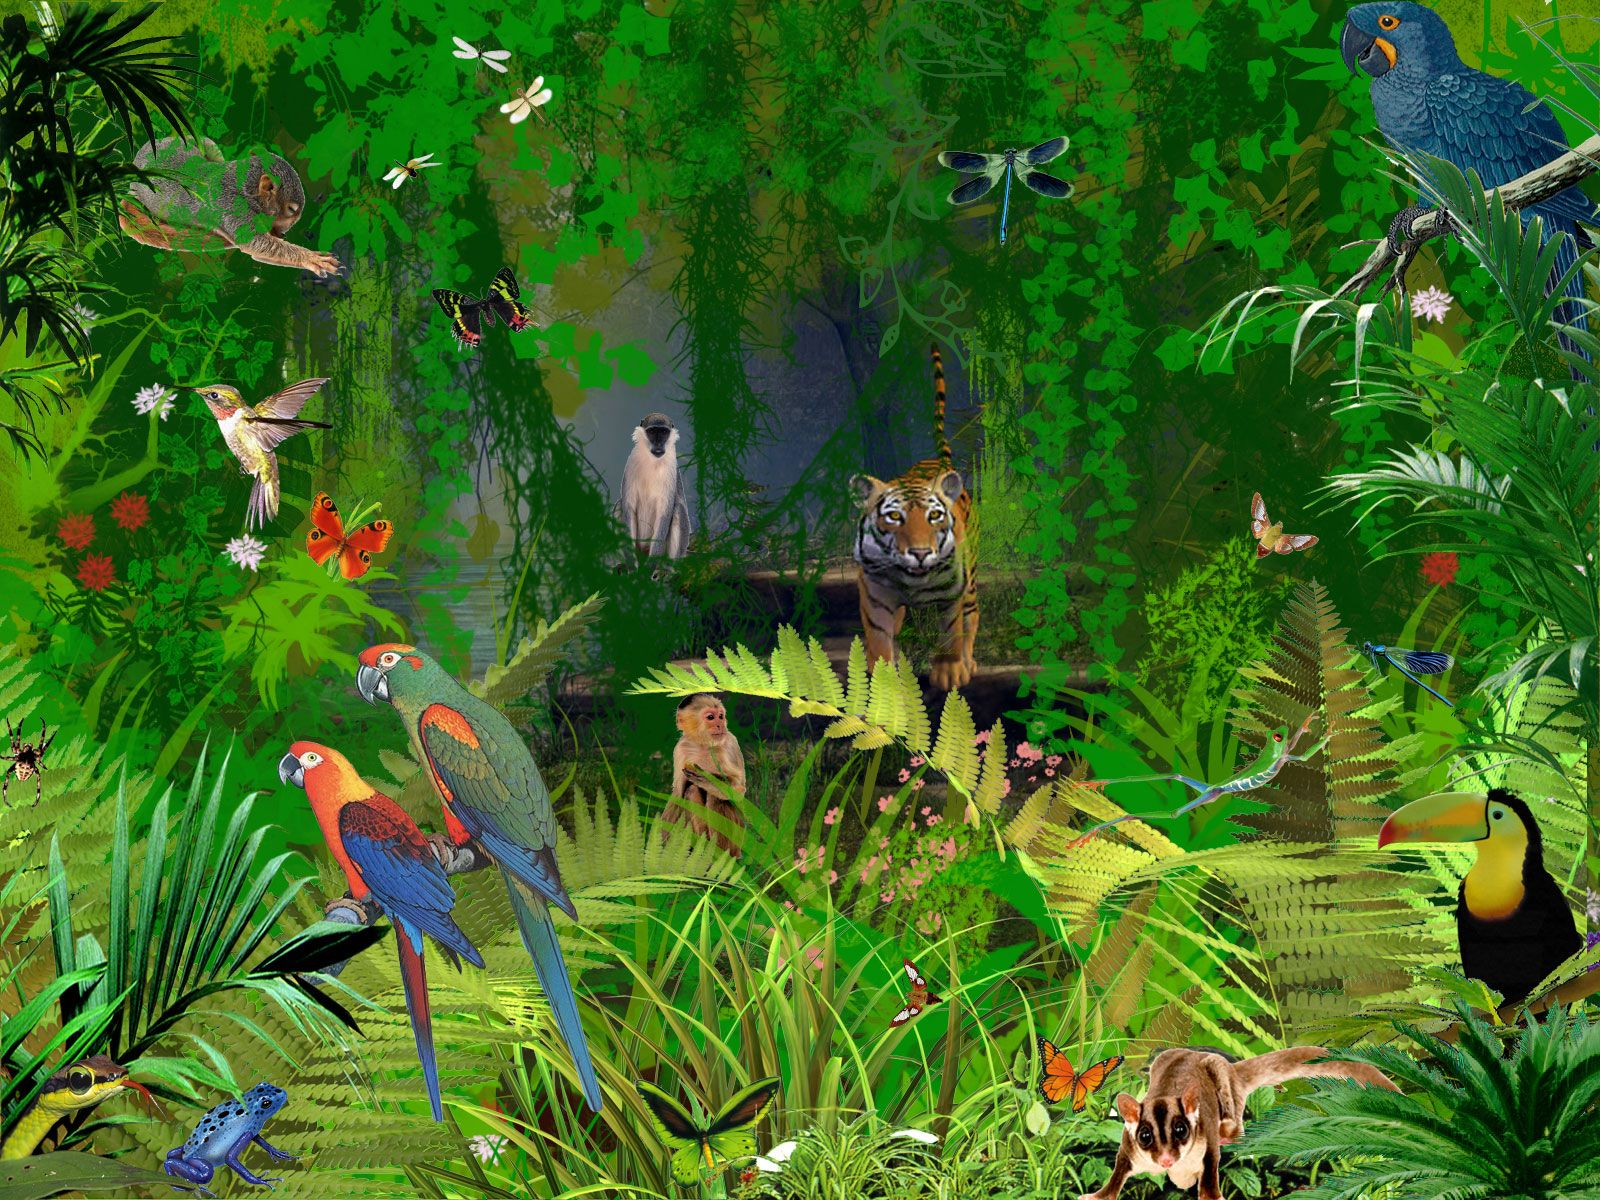 rainforest animal wallpaper pictures - photo #11